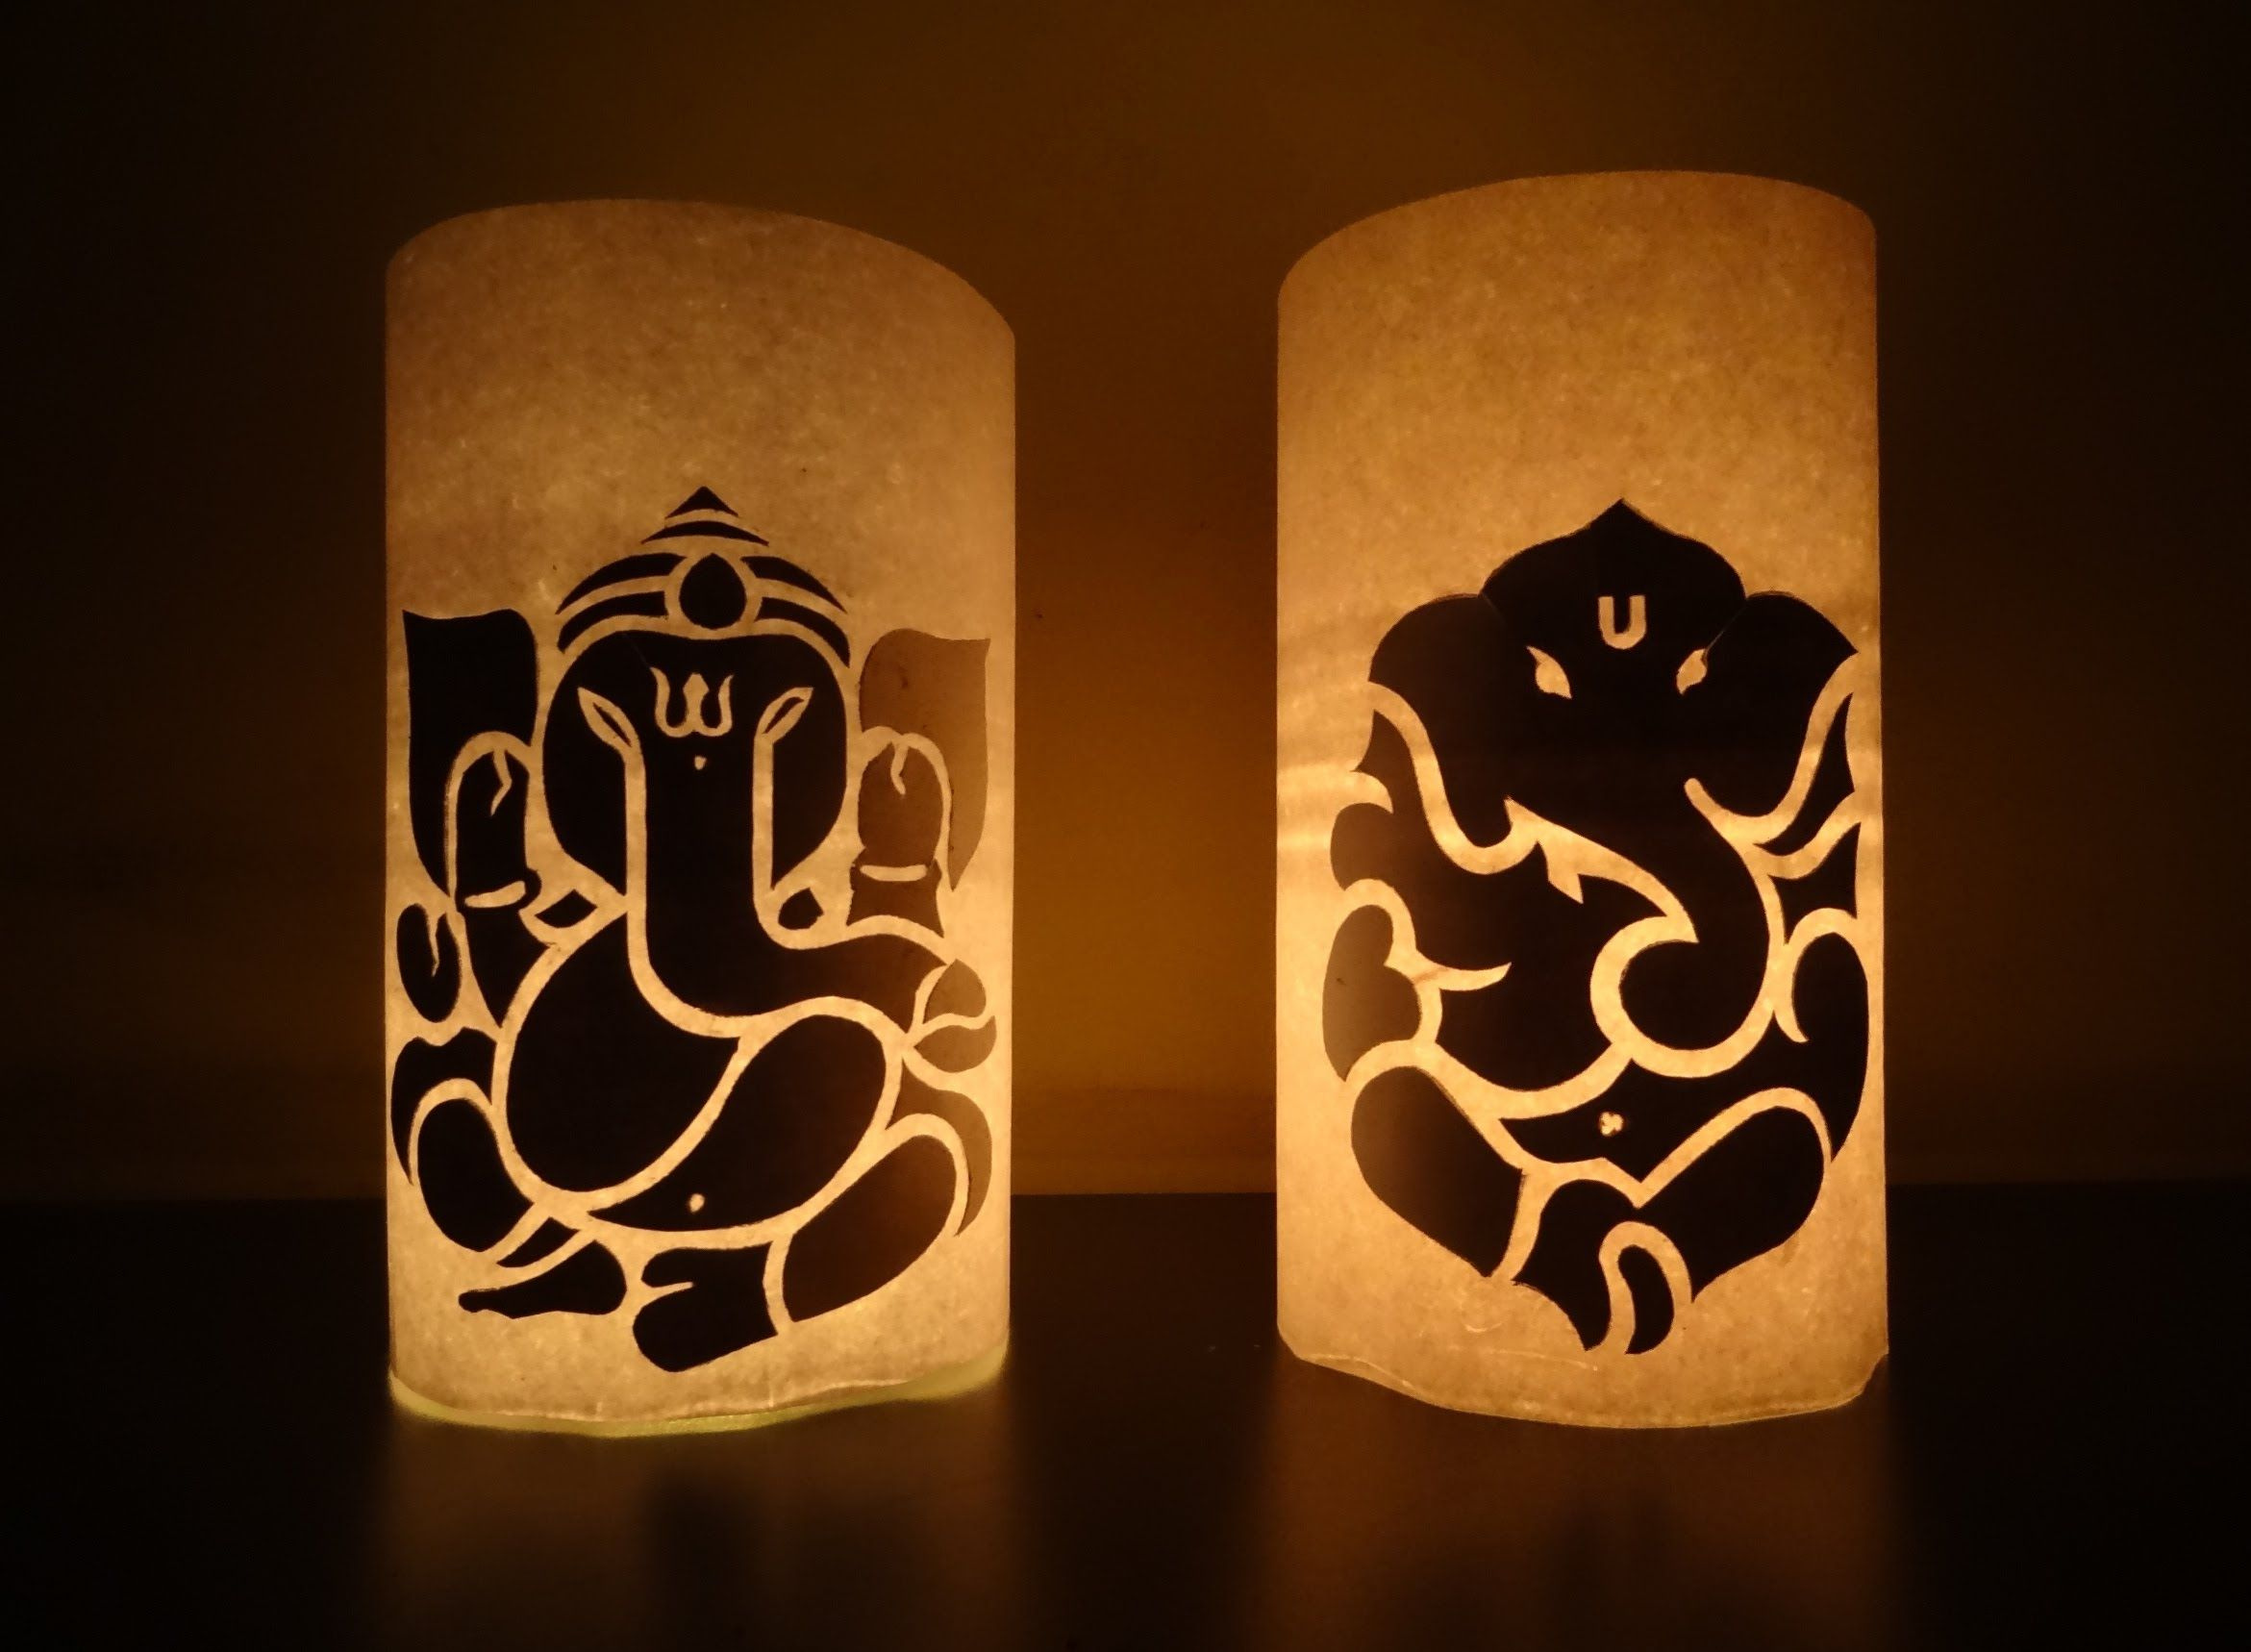 Paper Crafts (Diwali Decoration Ideas) : Candle illuminated Lord ... for Diy Paper Lamp Ideas  66plt